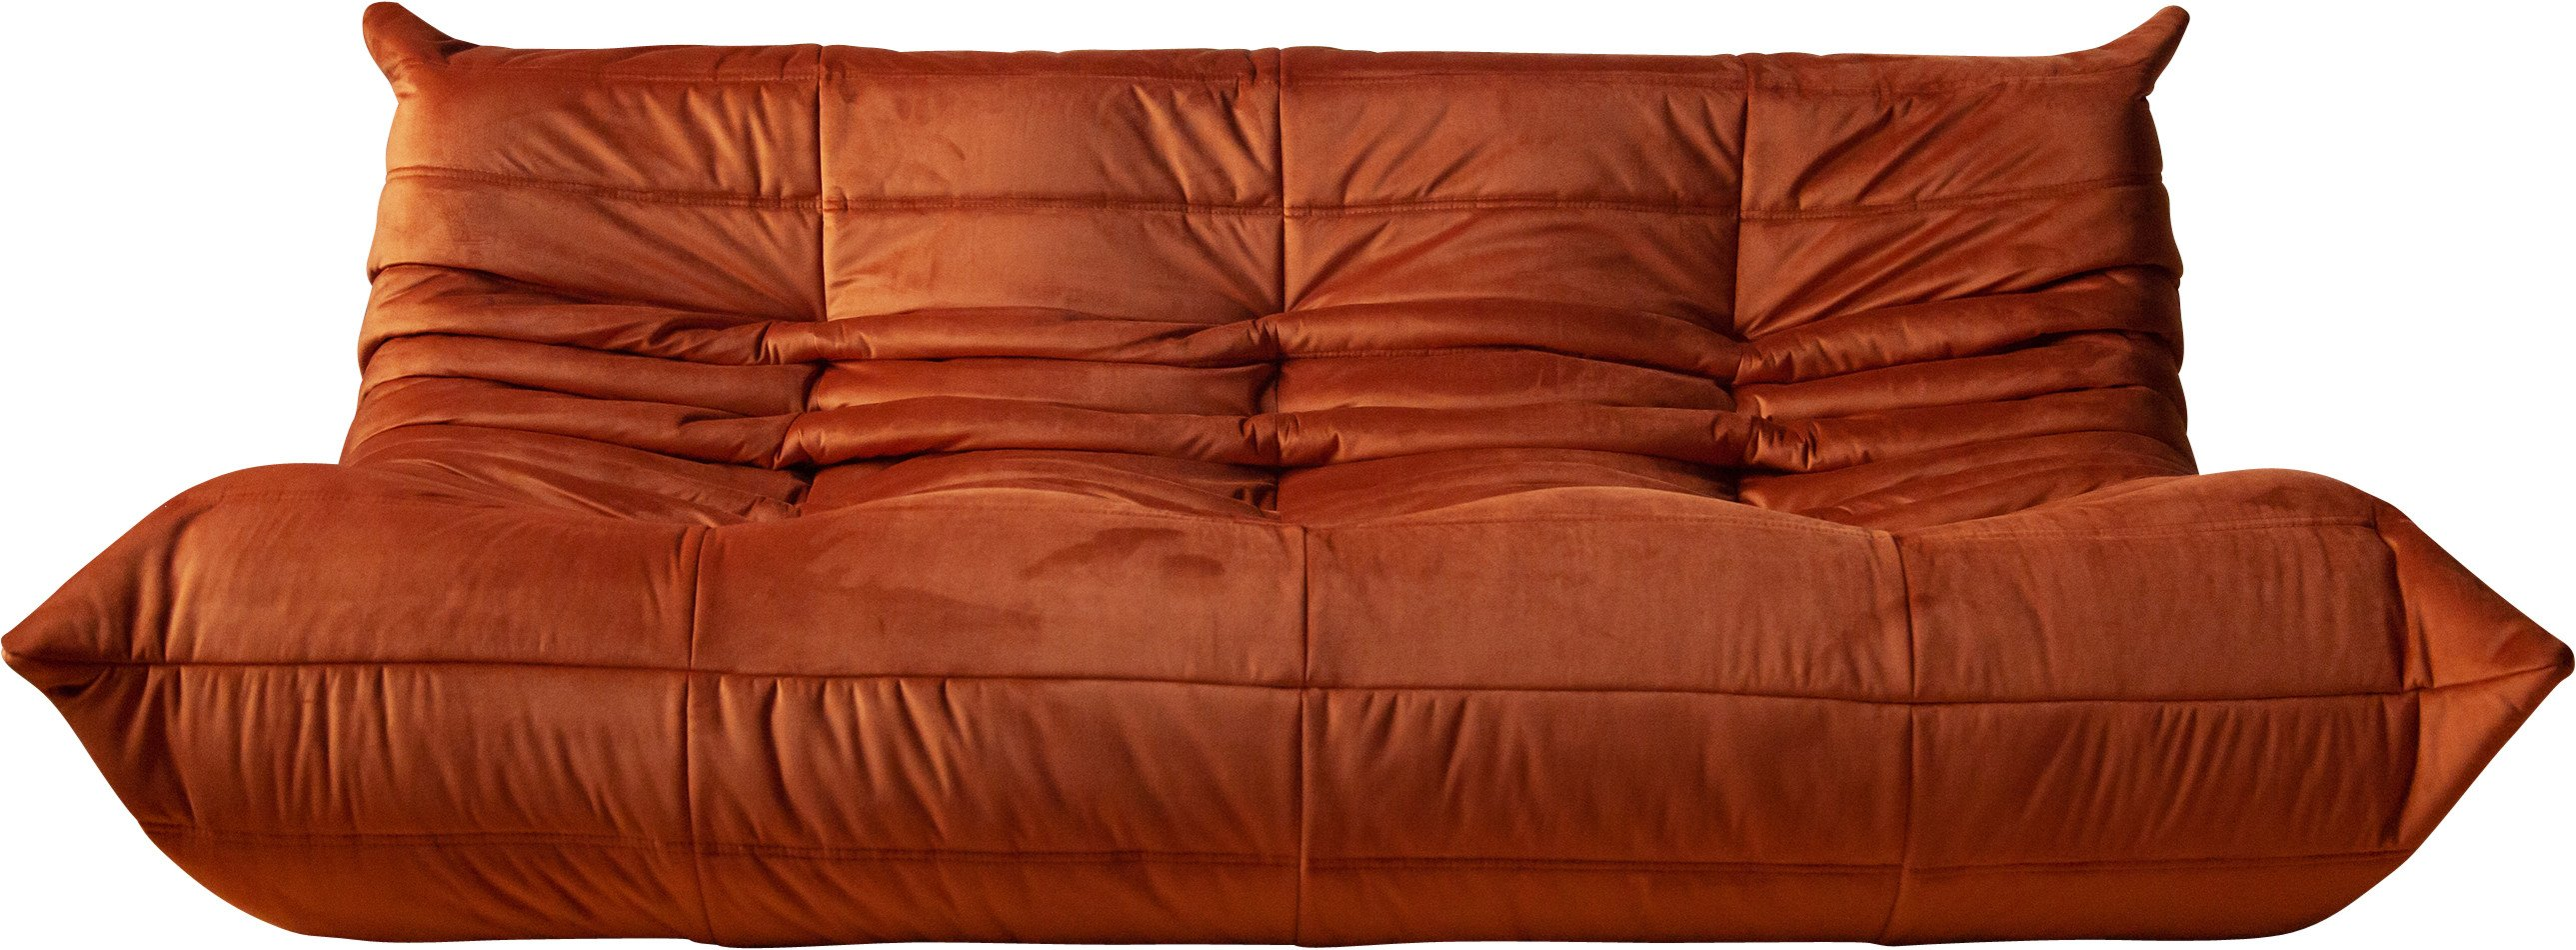 Togo Sofa by M. Ducaroy for Ligne Roset, France, 1970s